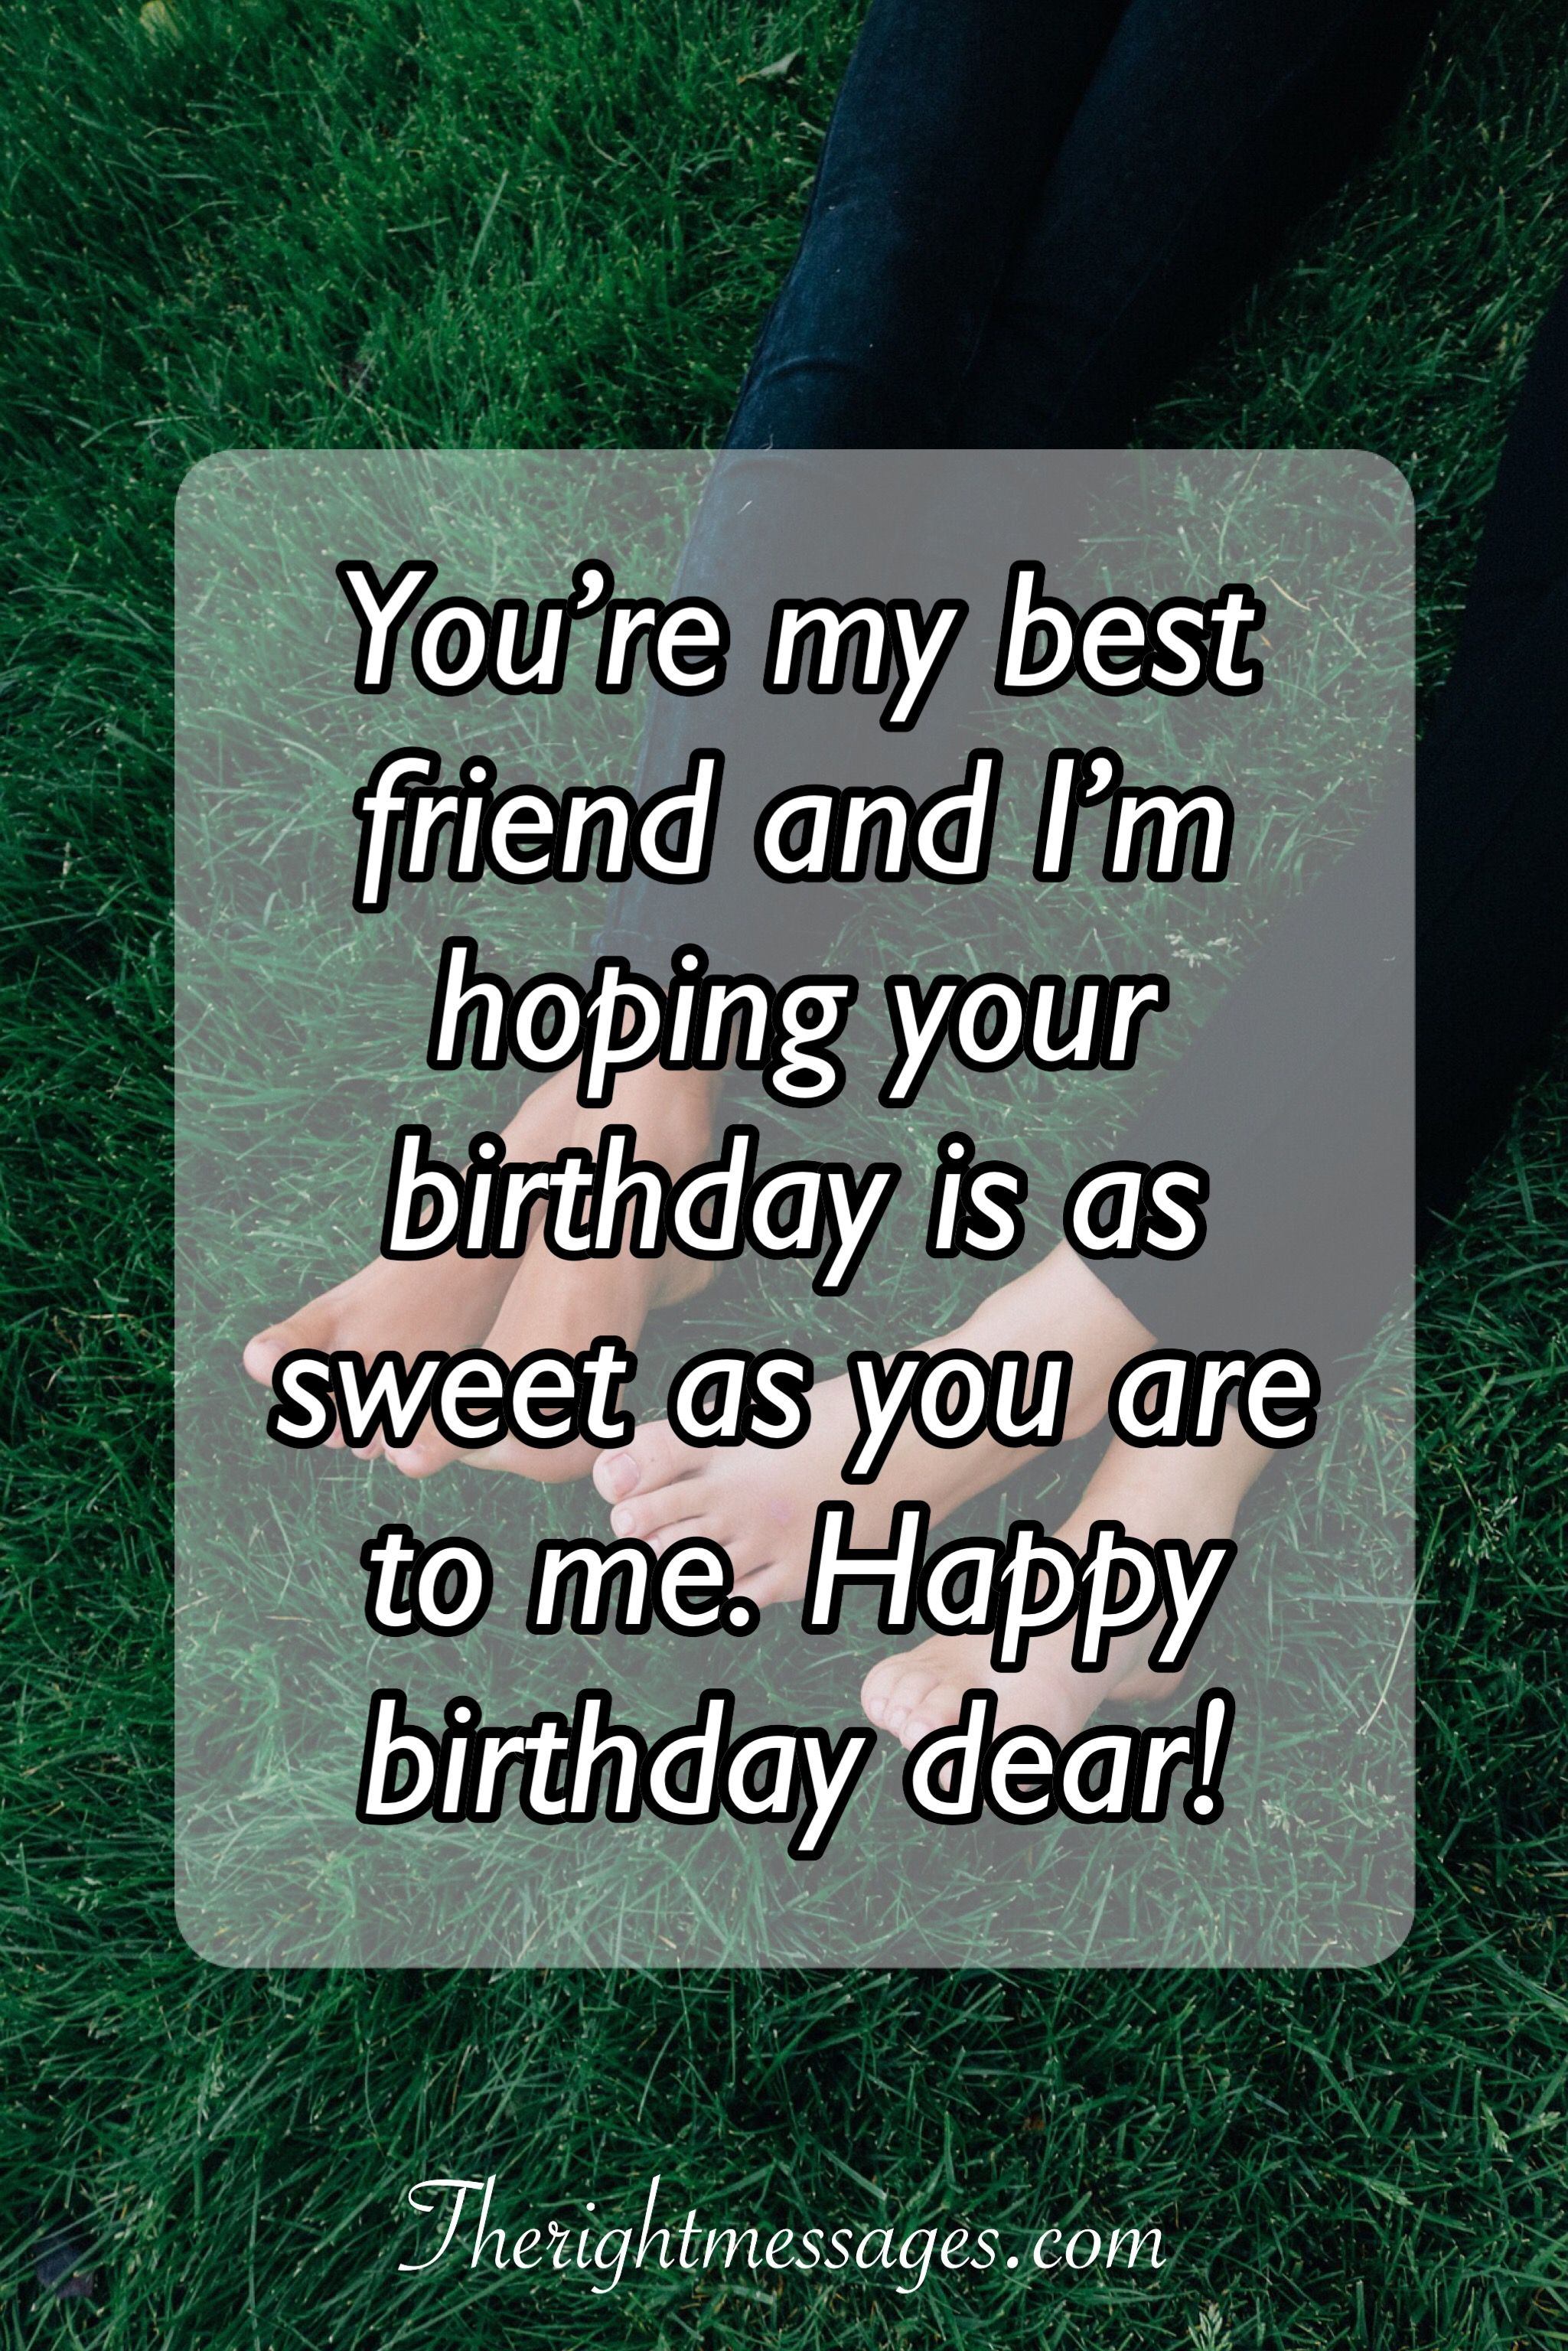 Short And Long Birthday Wishes For Best Friend The Right Messages Short Birthday Wishes Birthday Wishes For Friend Birthday Quotes For Best Friend